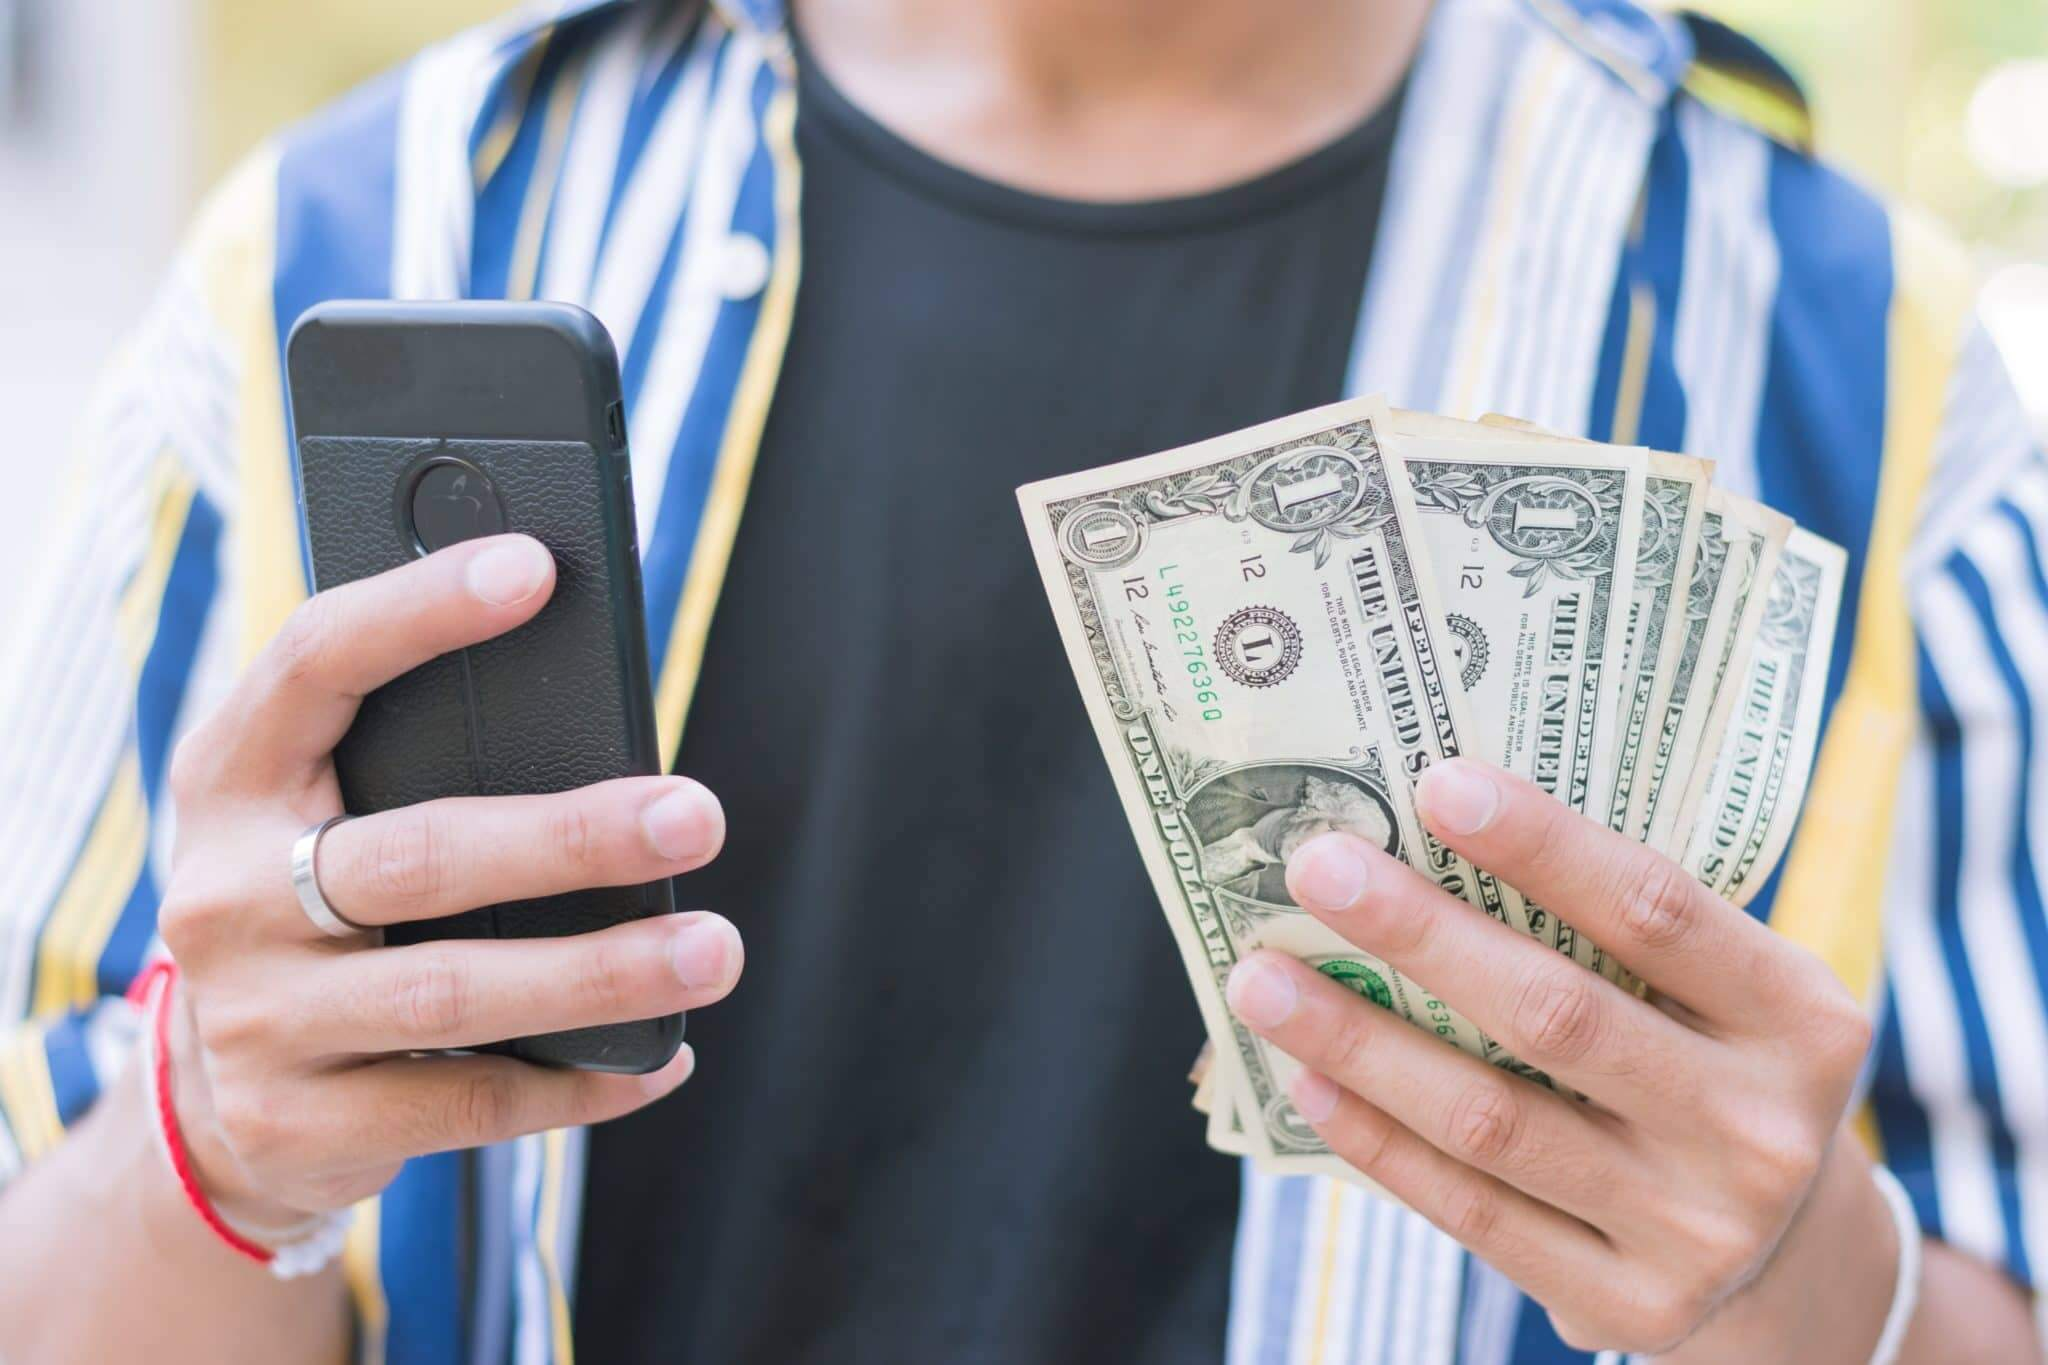 A walking man holding cash in one hand and looking at a cell phone in the other.